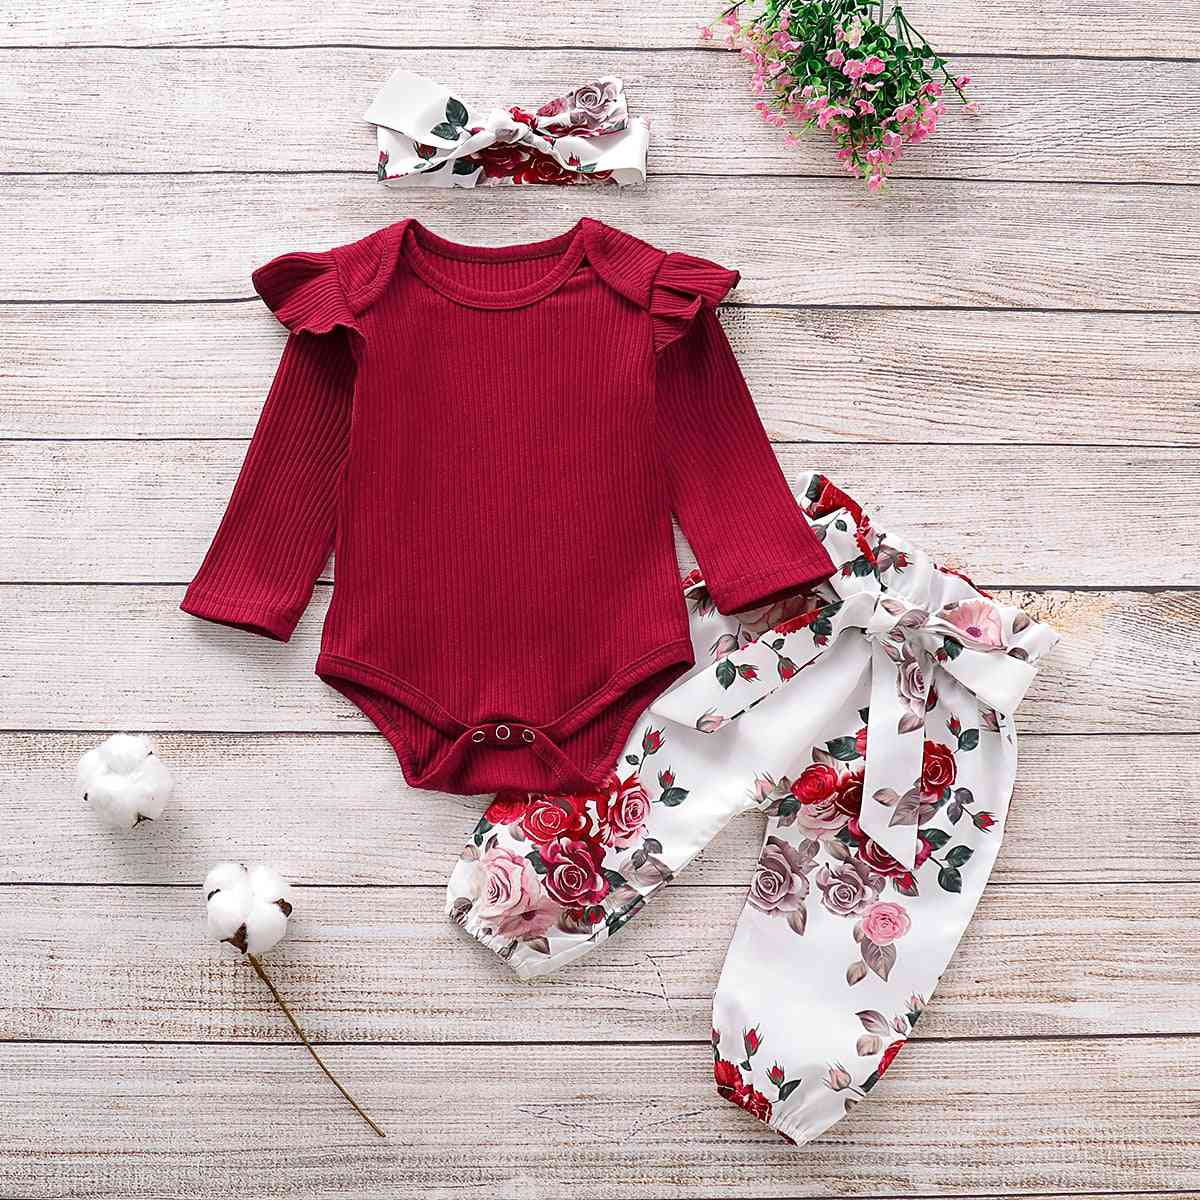 Newborn Baby Girl Clothes Knitting Cotton Long Sleeve Romper Tops Flower Print Pants Headband Outfits